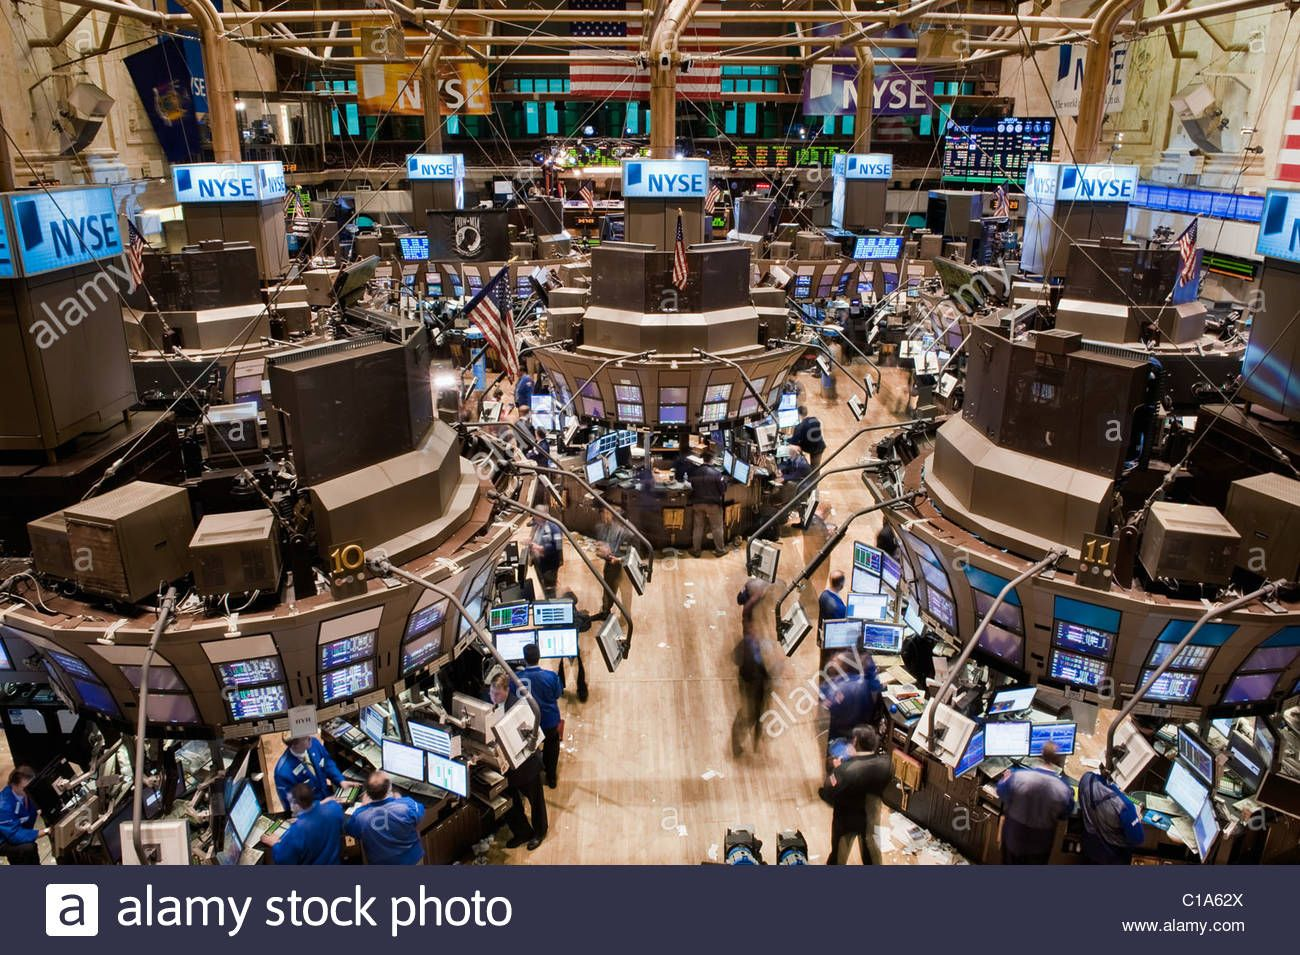 Looking Downwards At The Trading Floor Of The New York Stock Exchange On Wall Street Stock Image Stock Exchange Initial Public Offering Trading Brokers